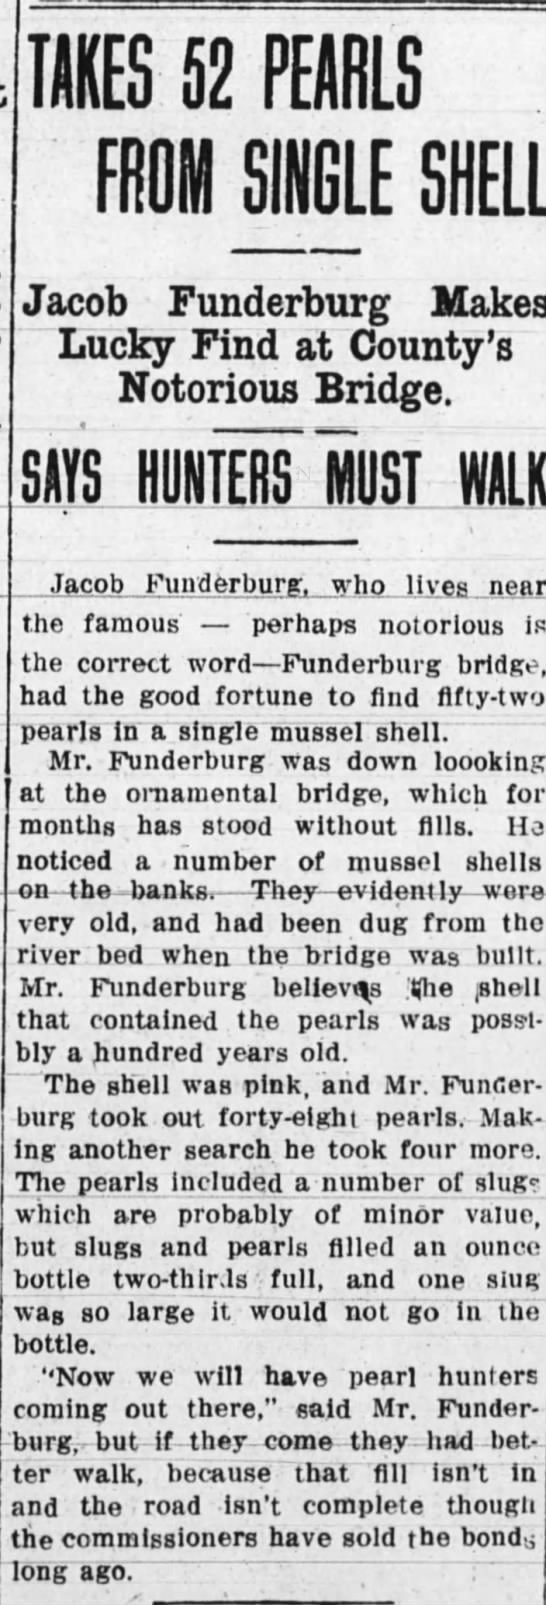 Jacob Funderburg finds pearls 31 july 1914 - TAKES 52 PEARLS FROM SINGLE SHELL Jacob...